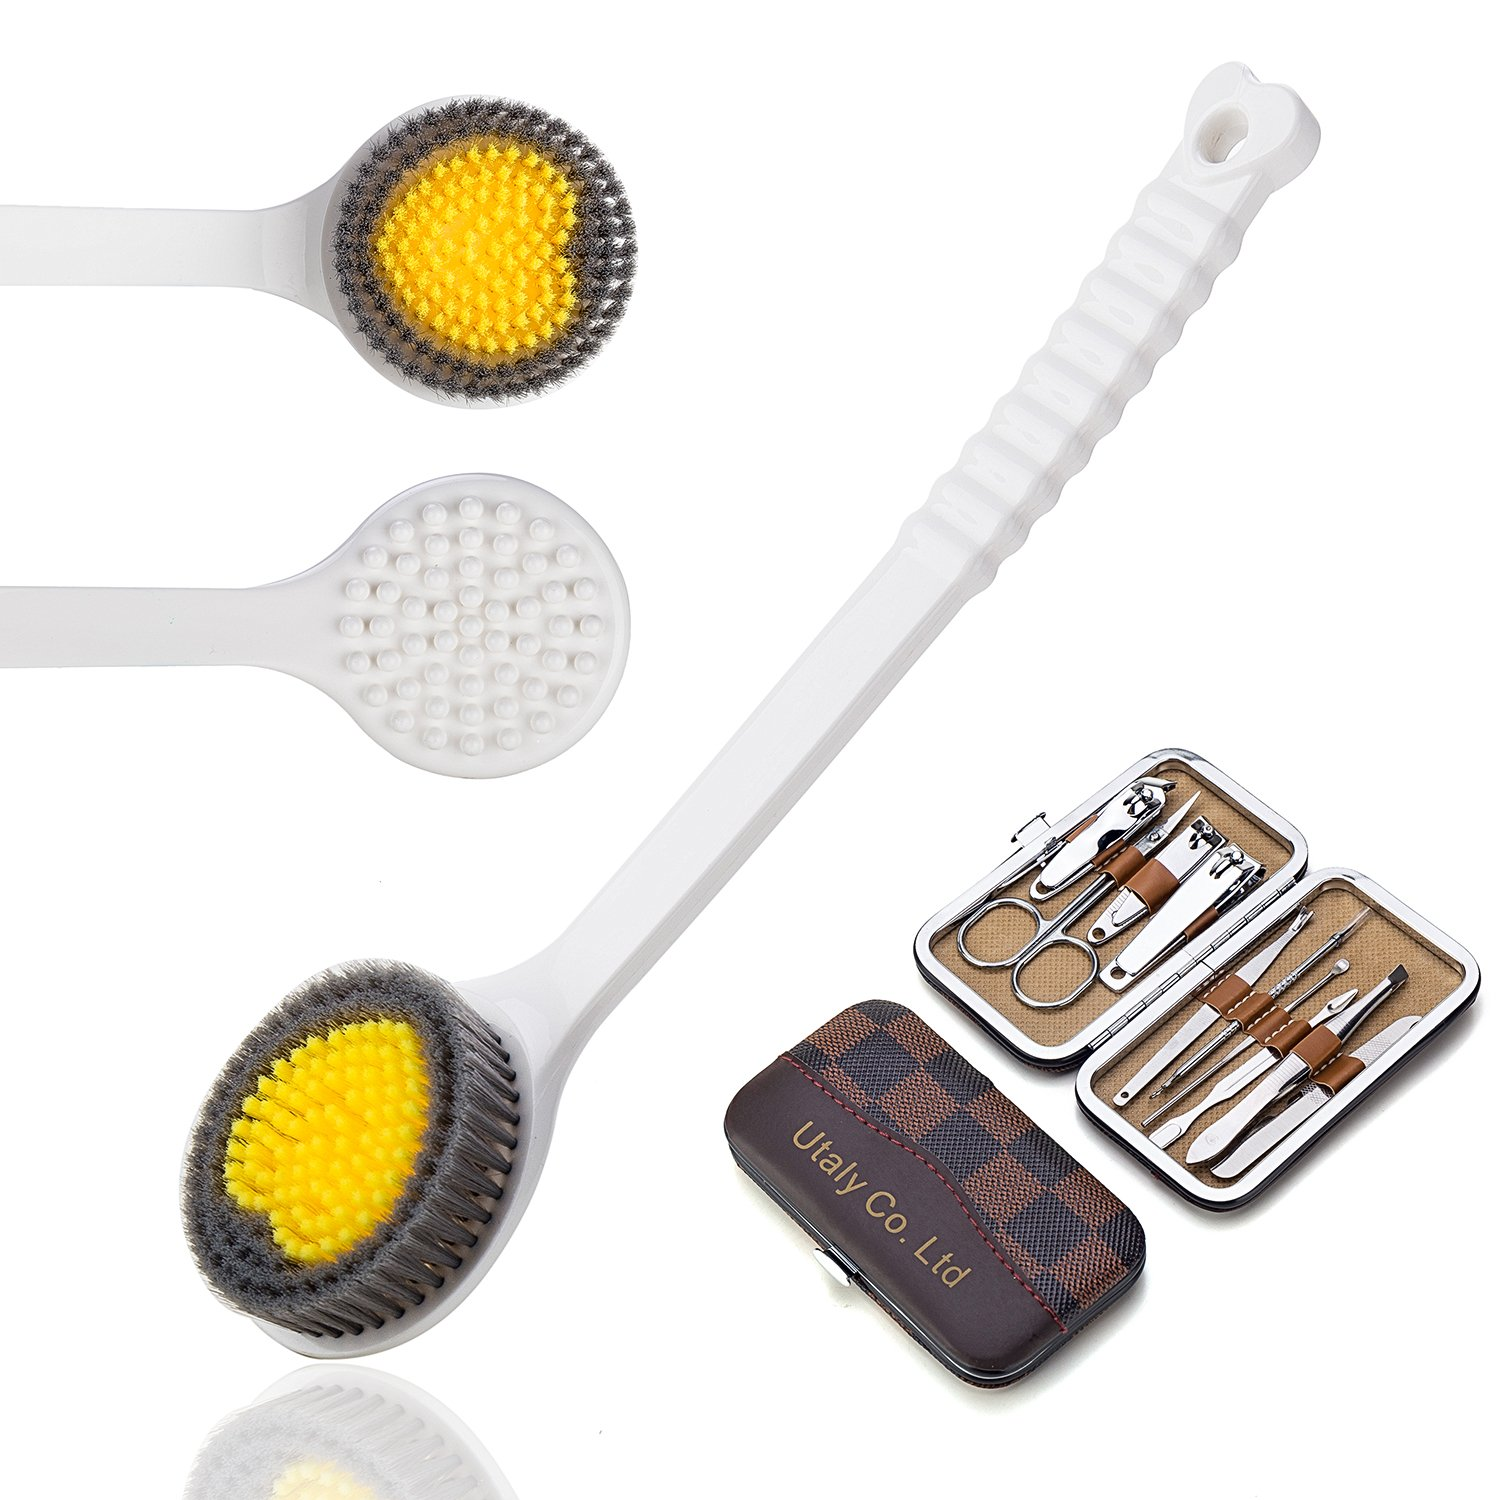 Bath Brush Shower Back Exfoliator with Manicure-Set Utaly